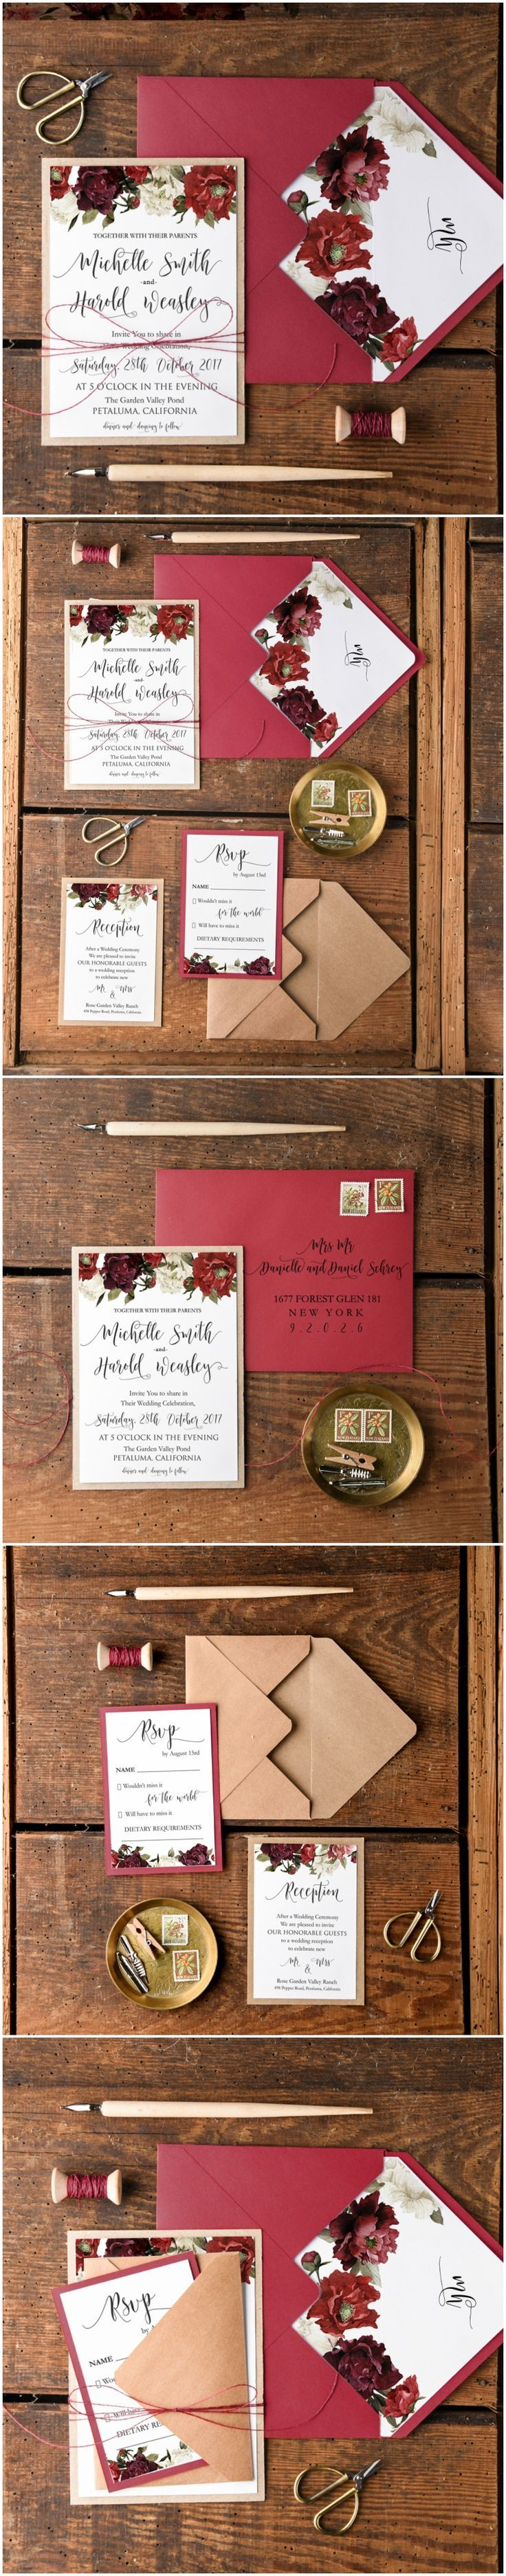 23 best Invitation images on Pinterest | Invitation ideas ...